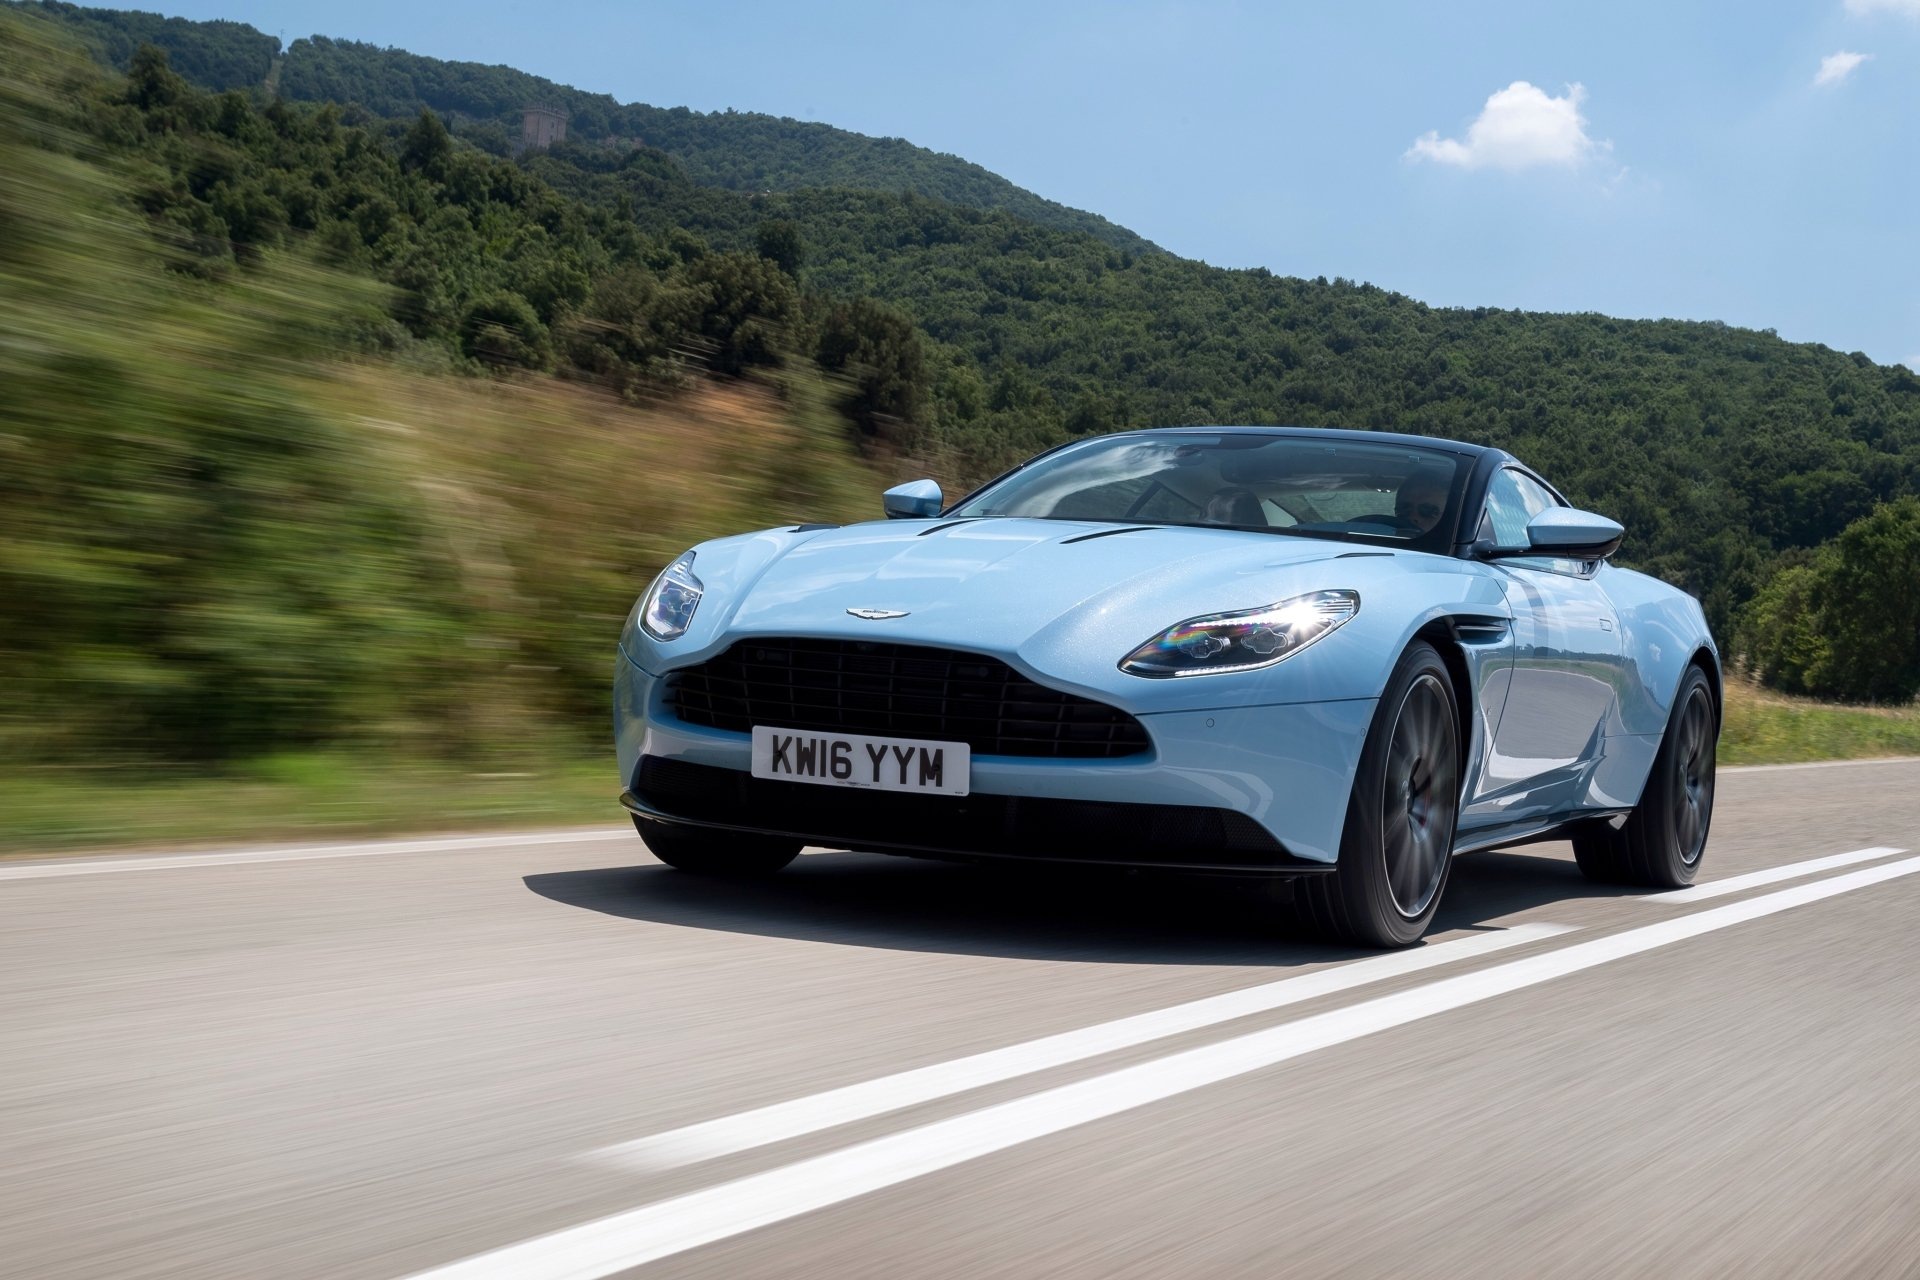 Vehicles - Aston Martin DB11  Aston Martin Grand Tourer Sport Car Blue Car Car Vehicle Wallpaper